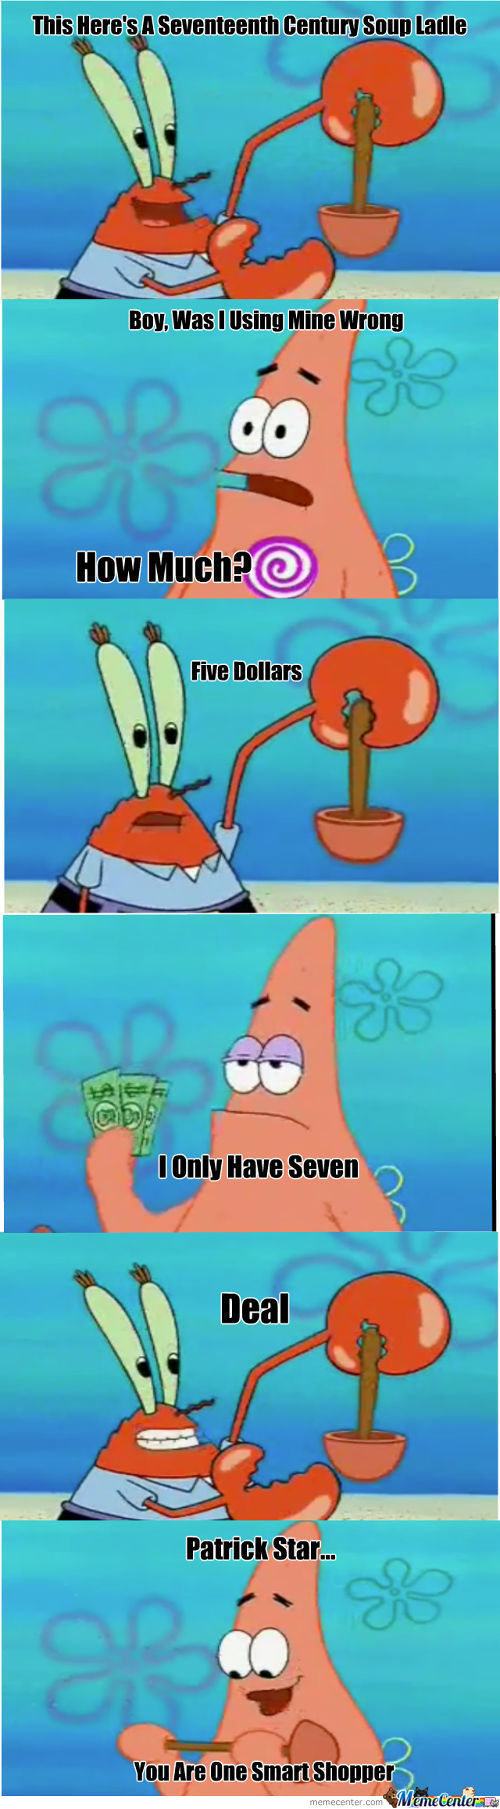 Patrick Star Smart Shopper